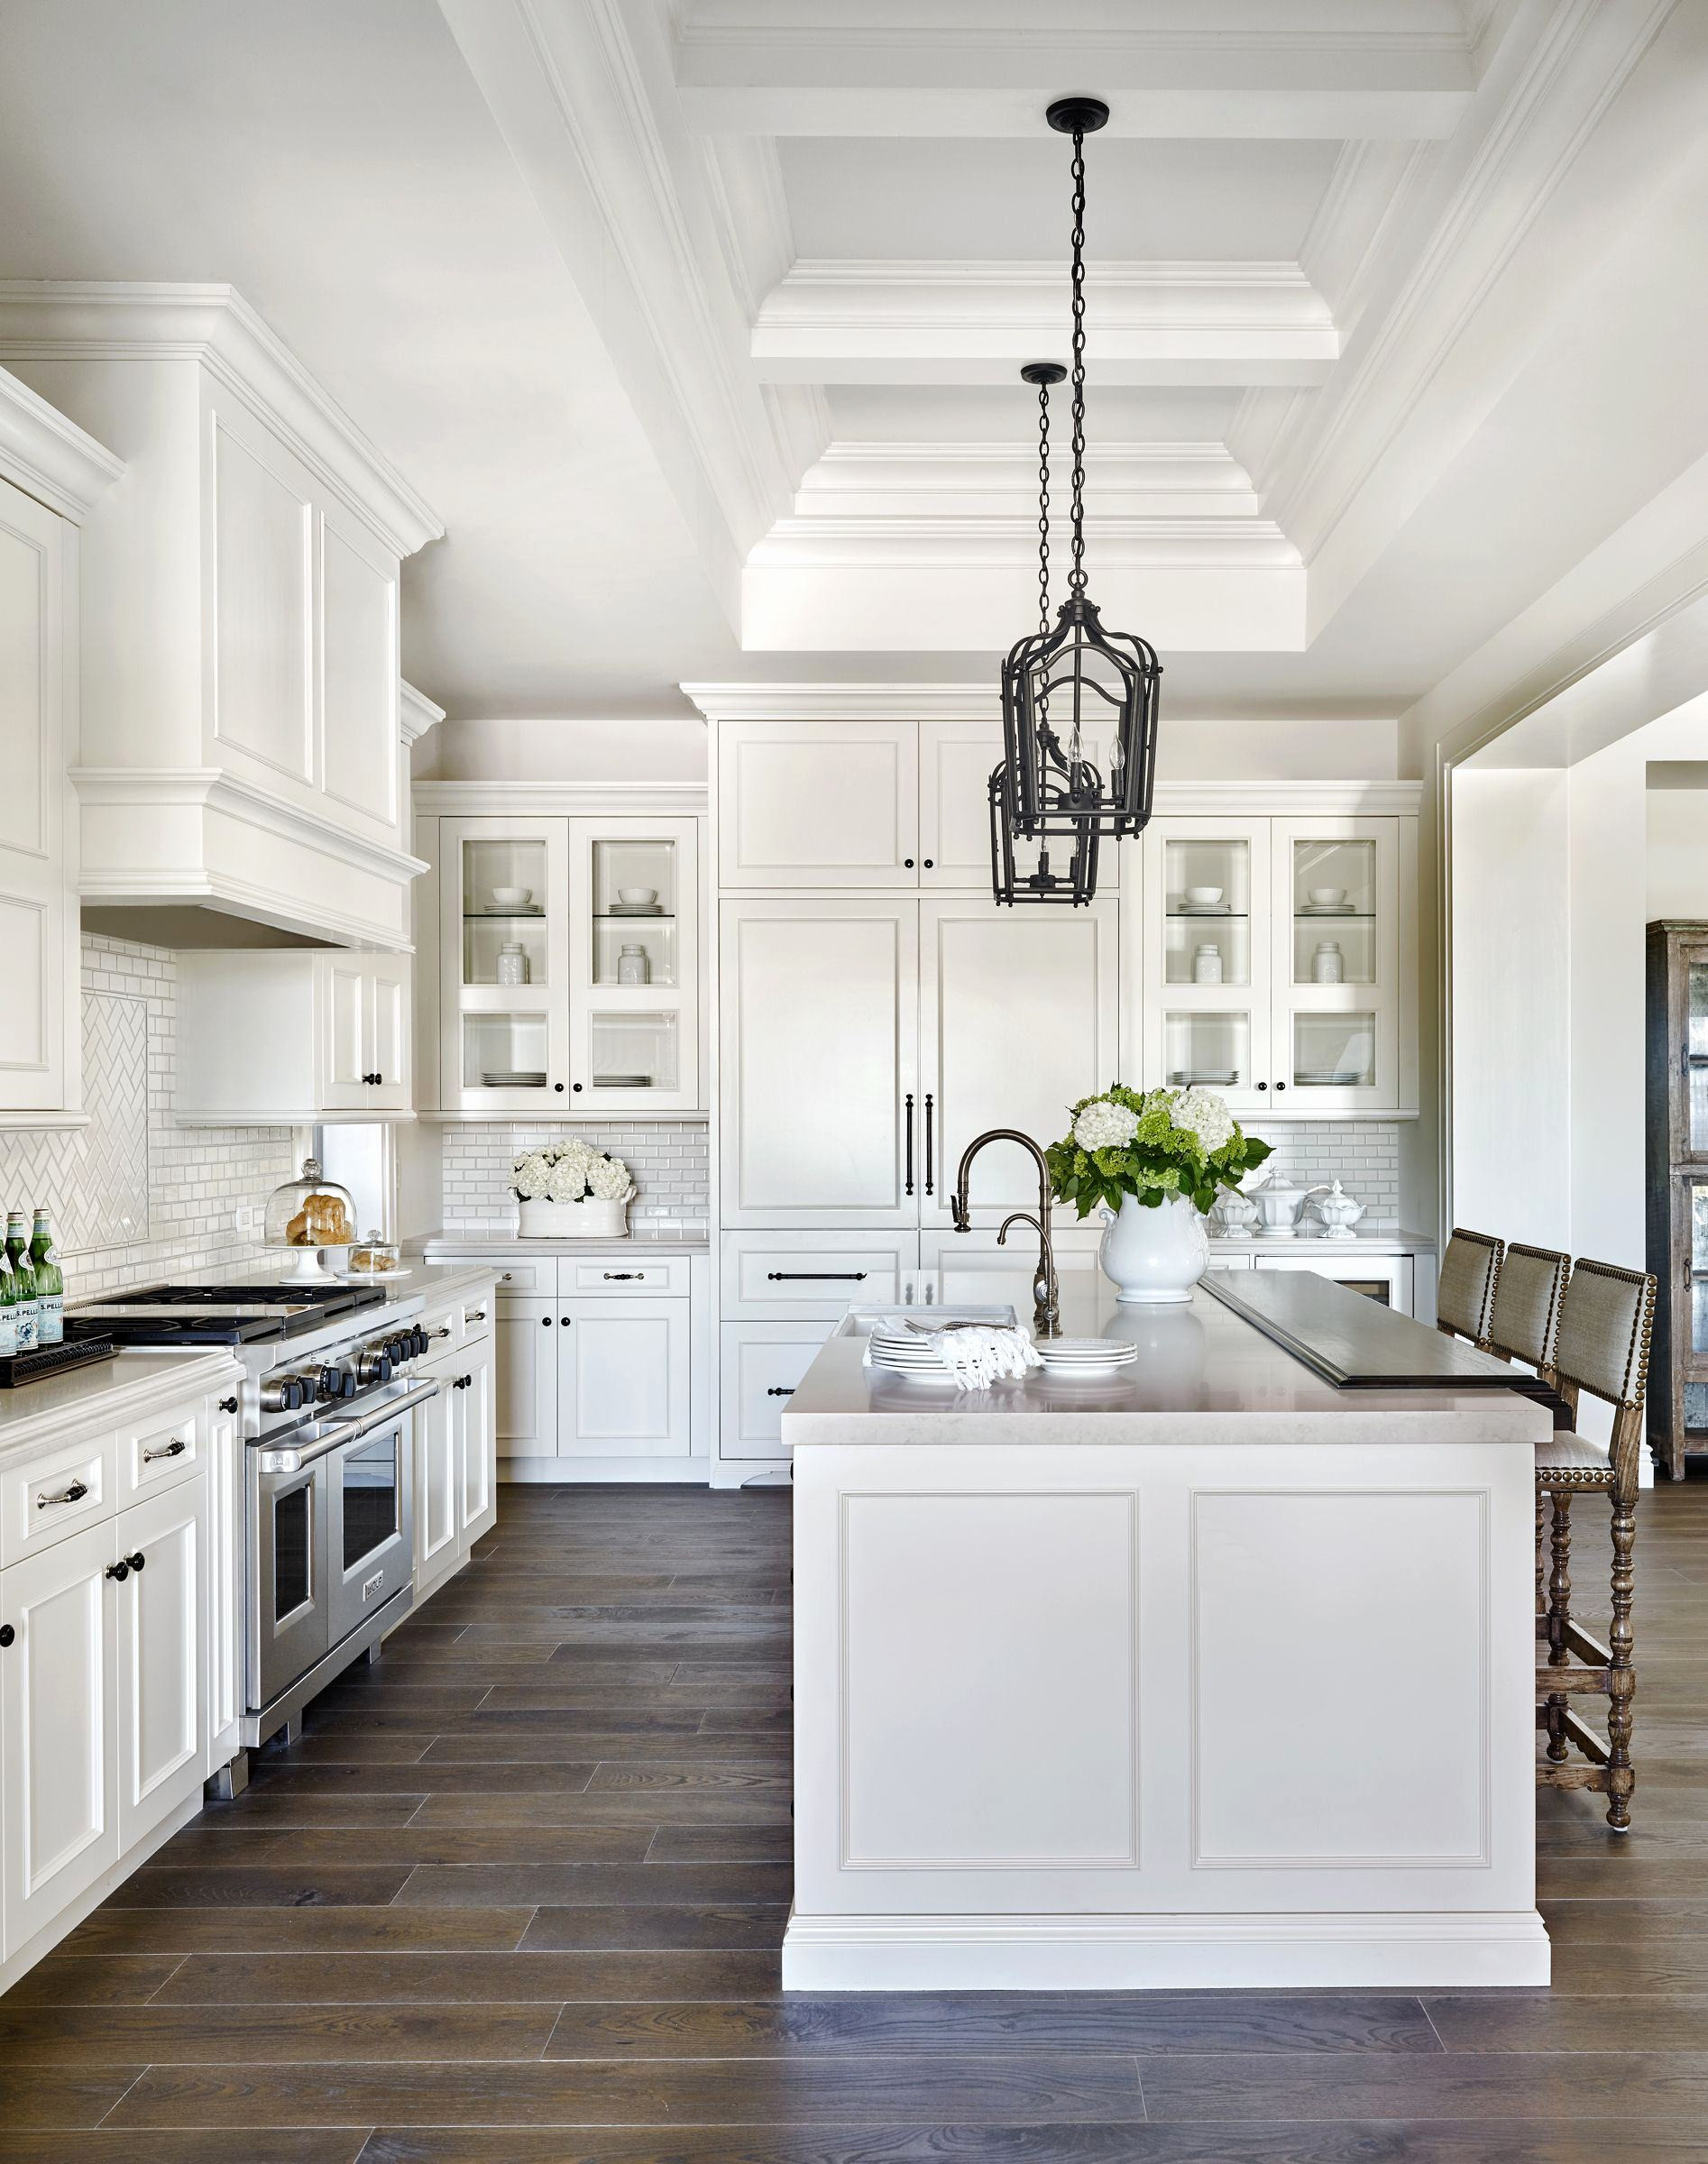 dark hardwood floors with oak cabinets of elegant 32 white kitchen cabinets dark wood floors photos regarding white kitchen cabinets dark wood floors new i want this exact layout of island opposite stove whisper rock of white kitchen cabinets dark wood floors